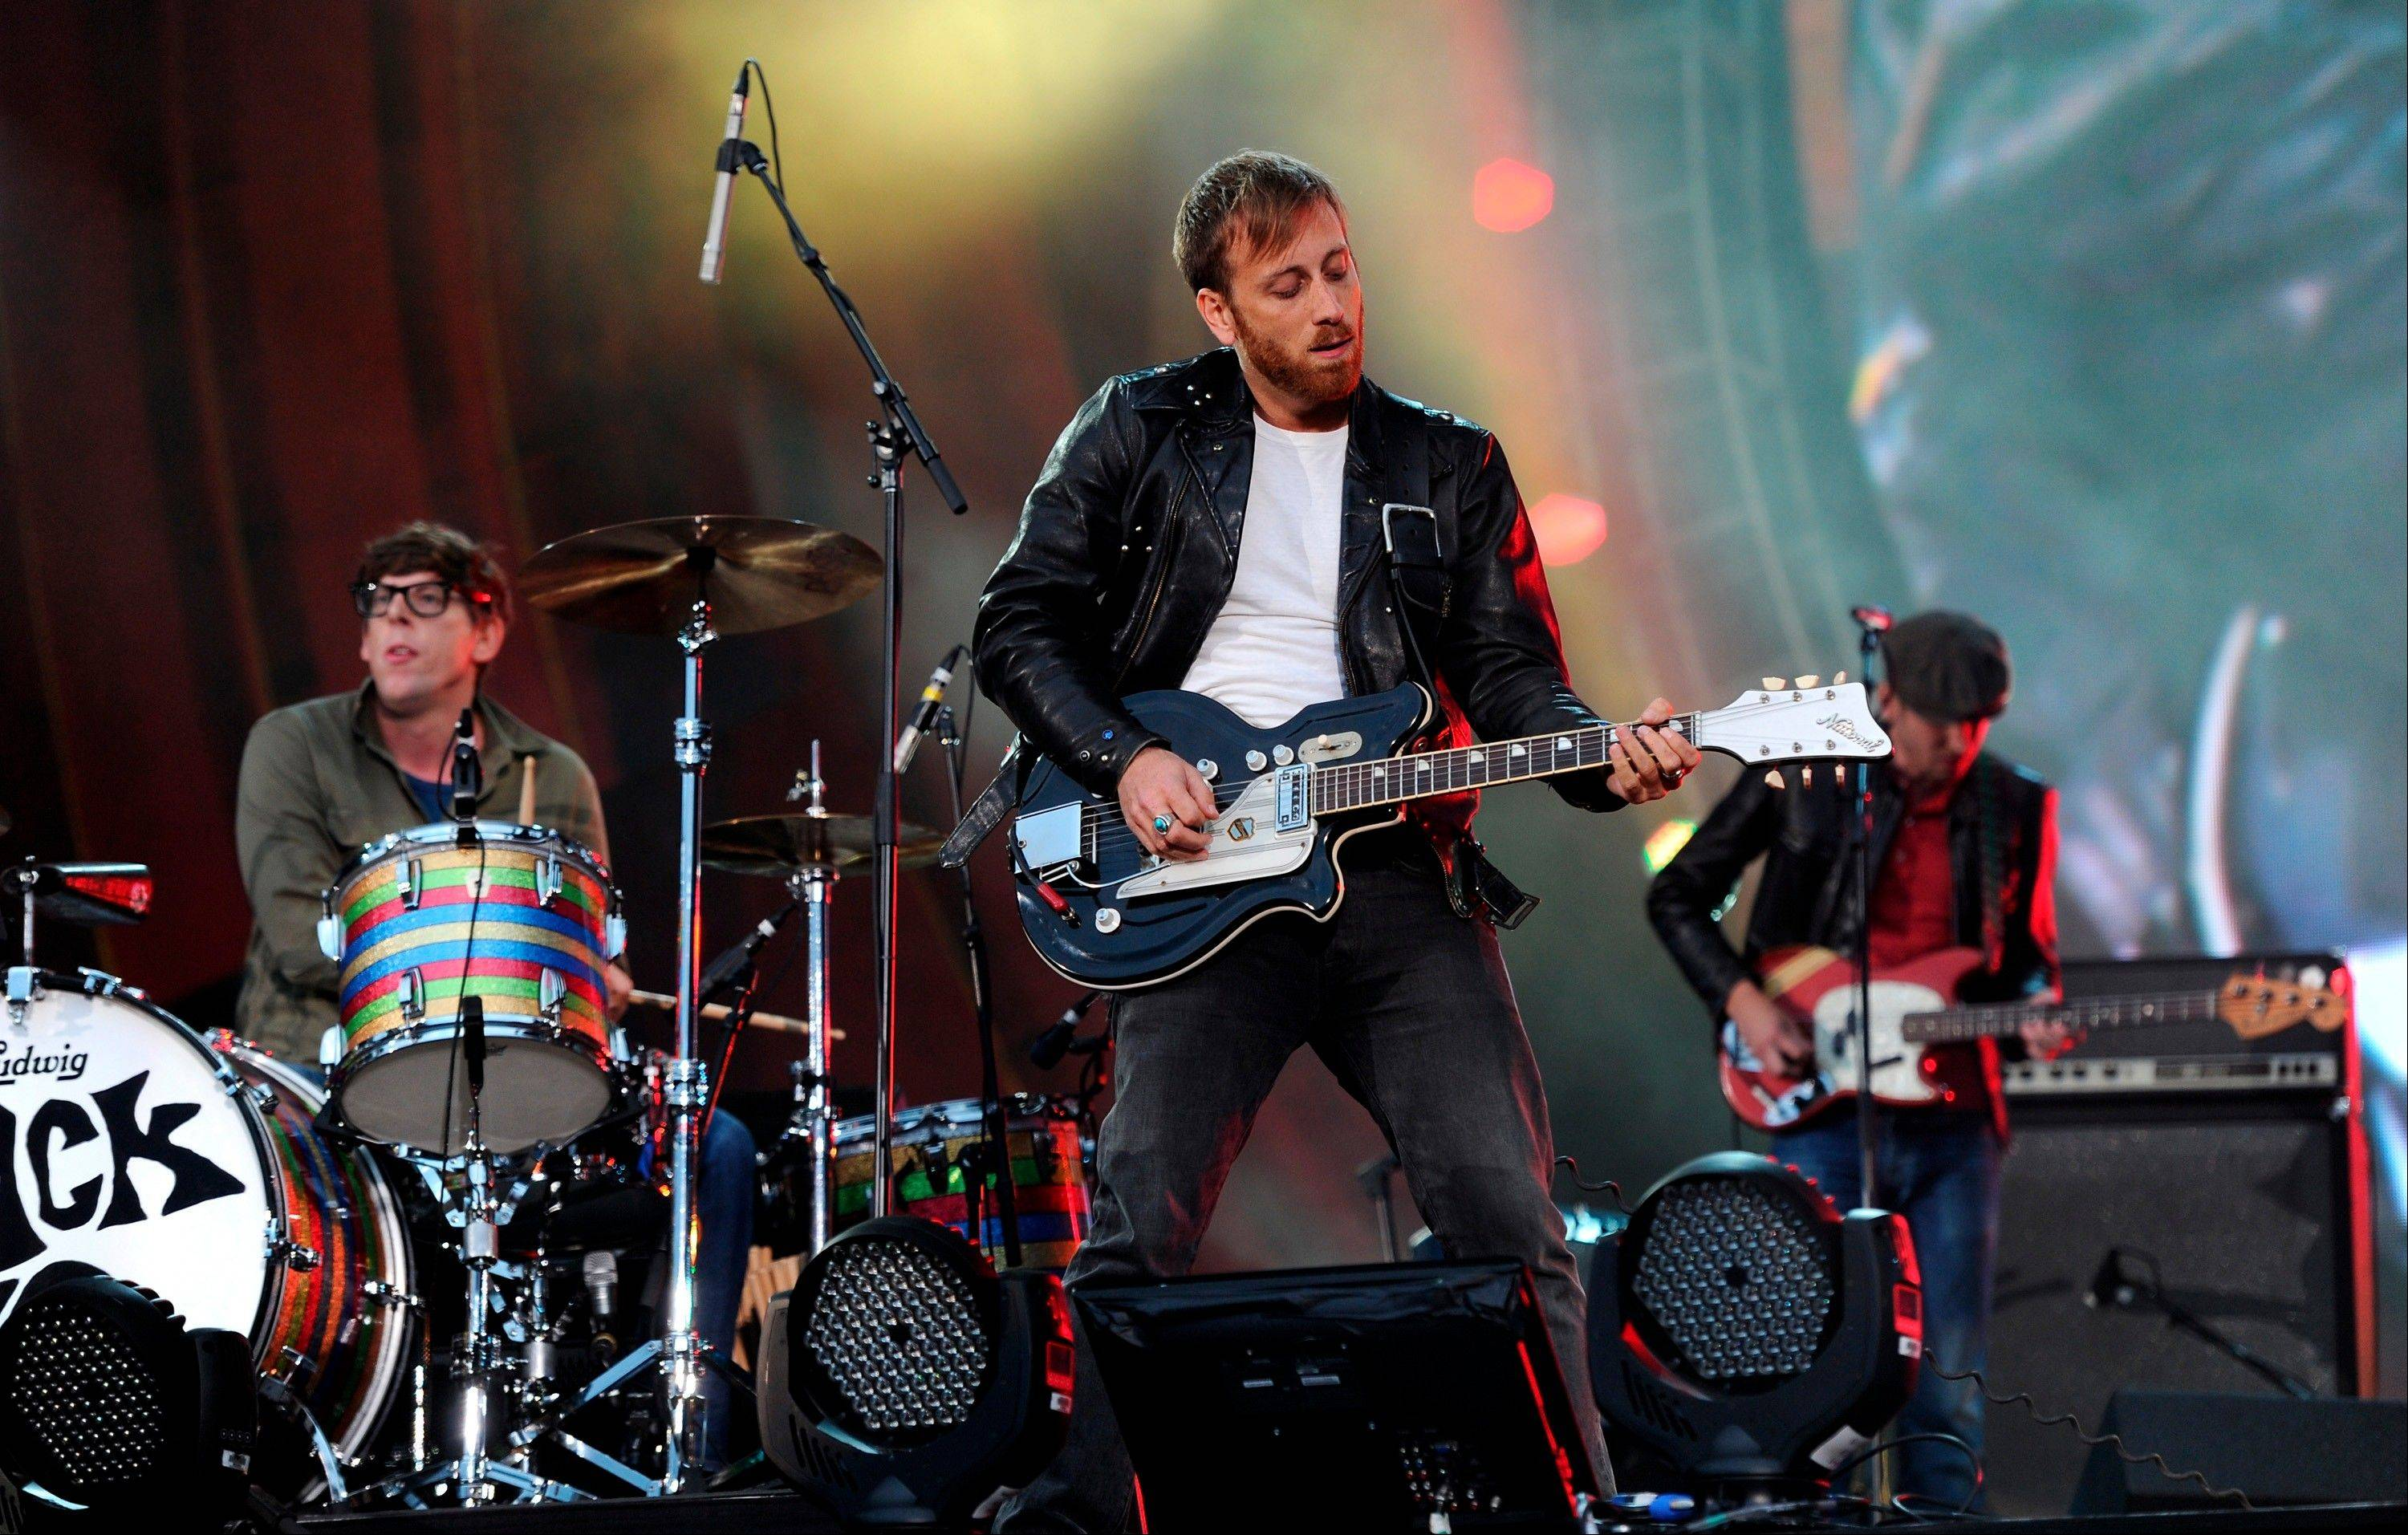 Guitarist Dan Auerbach, center, and drummer Patrick Carney of The Black Keys perform at the Global Citizen Festival in Central Park, in New York.